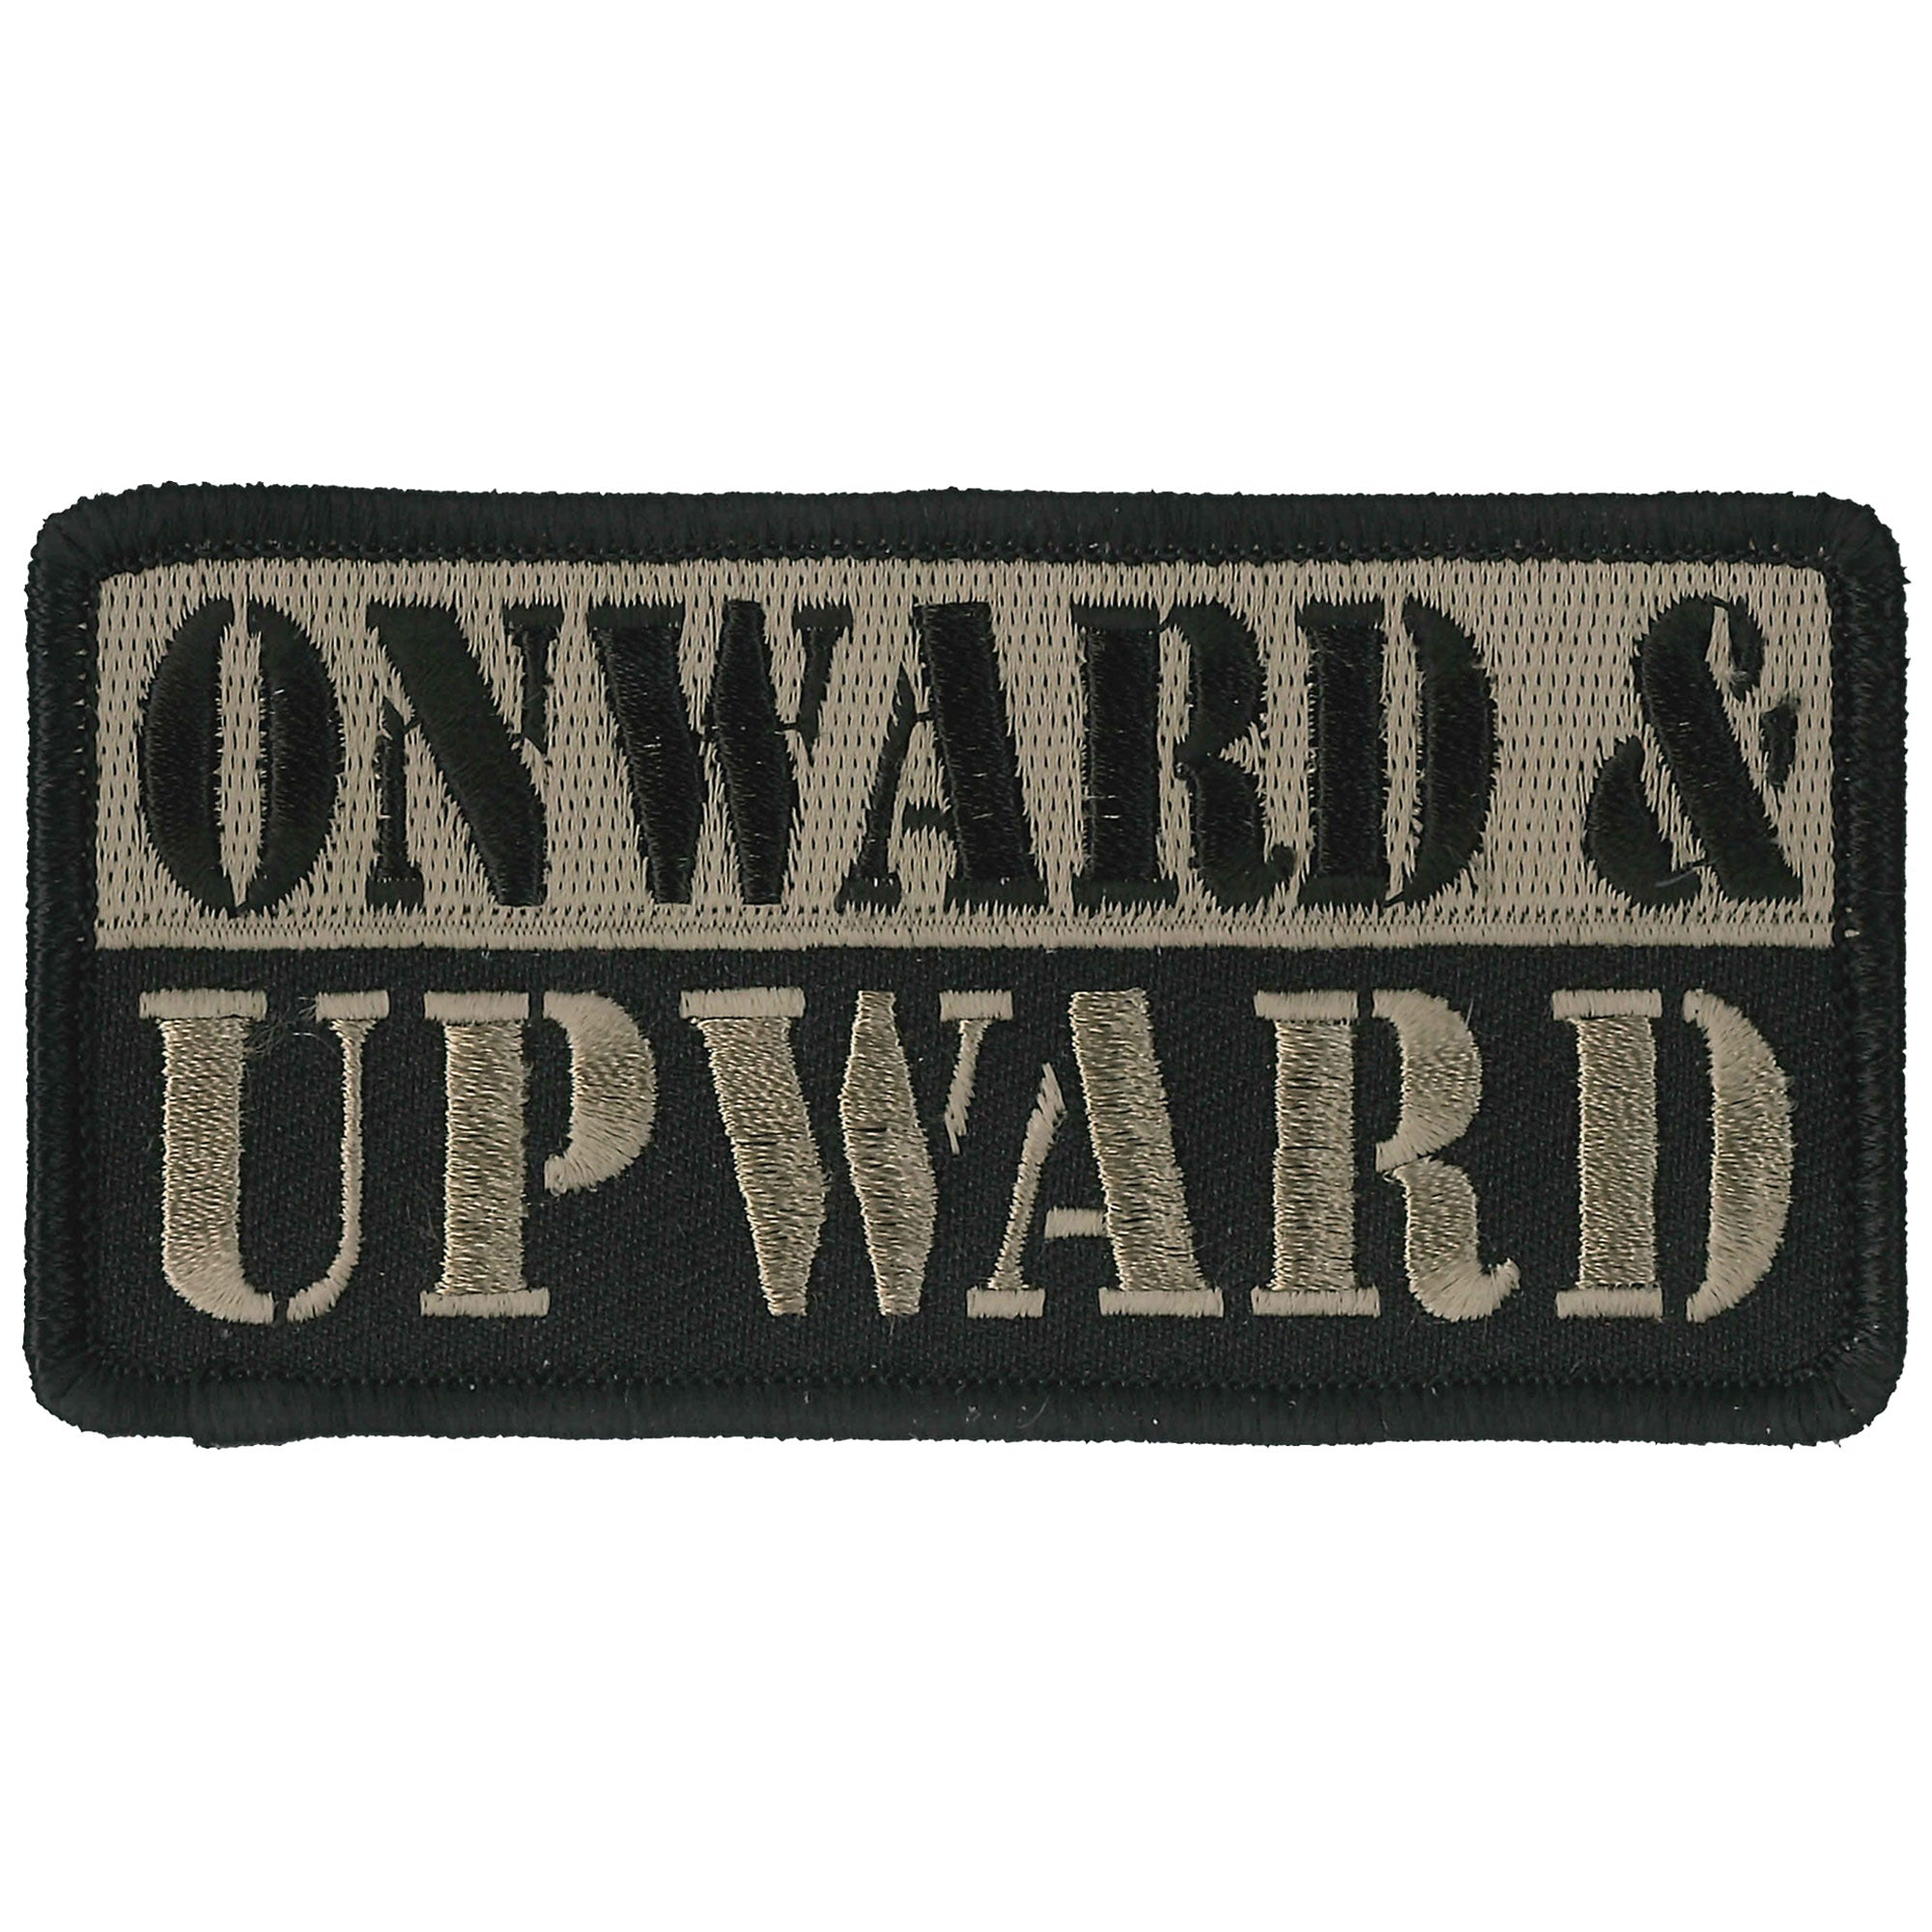 PATCH ONWARD AND UPWARD